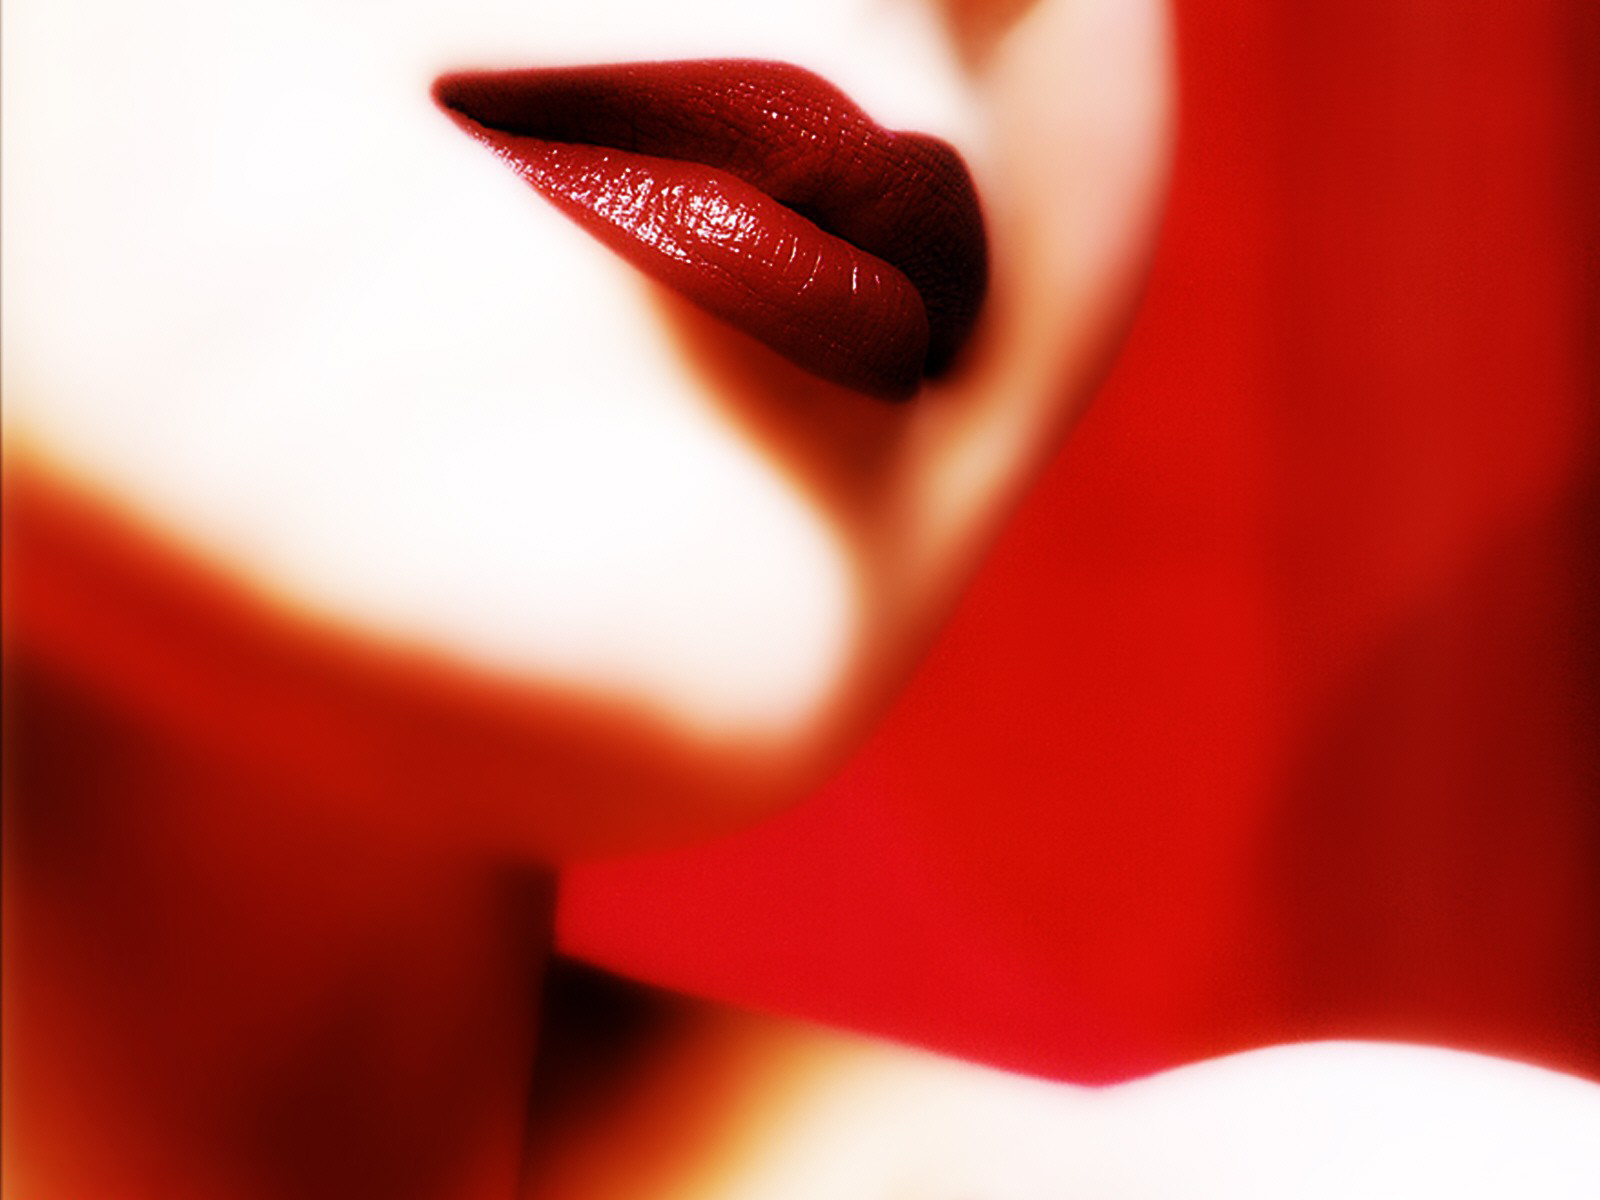 Lips Image for Facebook Share